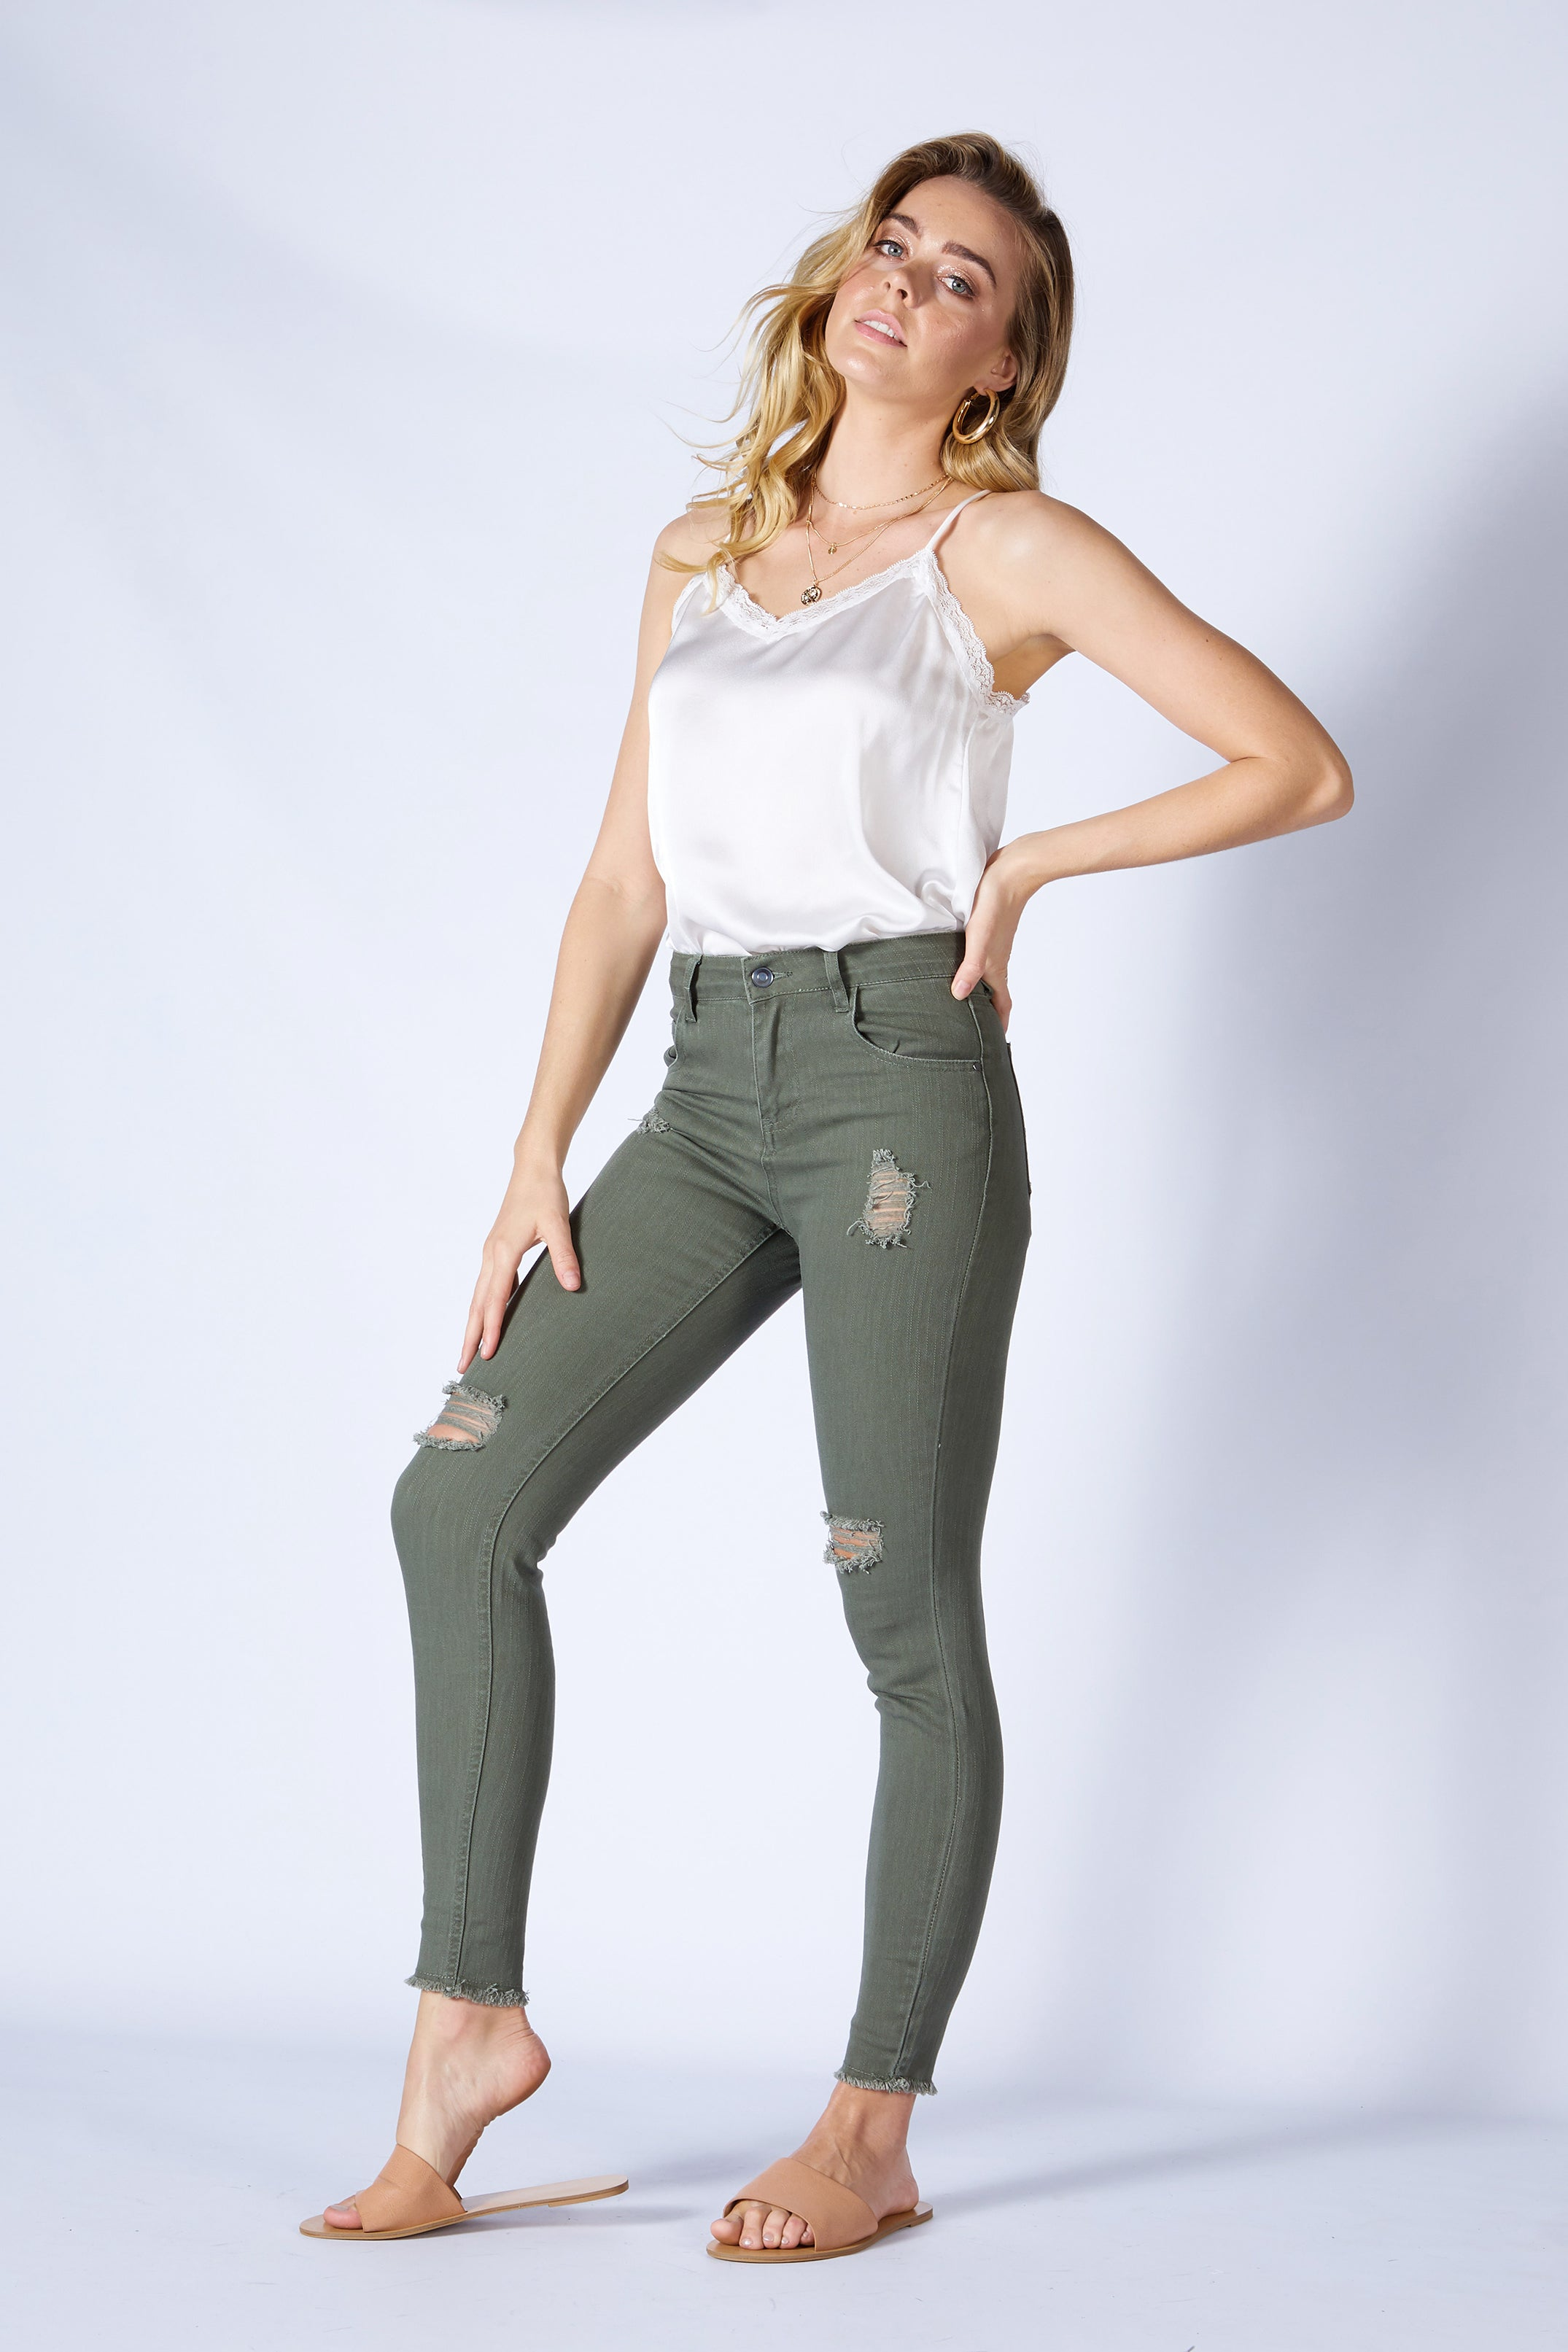 Sass Angus Ripped Denim Skinny Jeans in Sage Green Size 10 ONLY